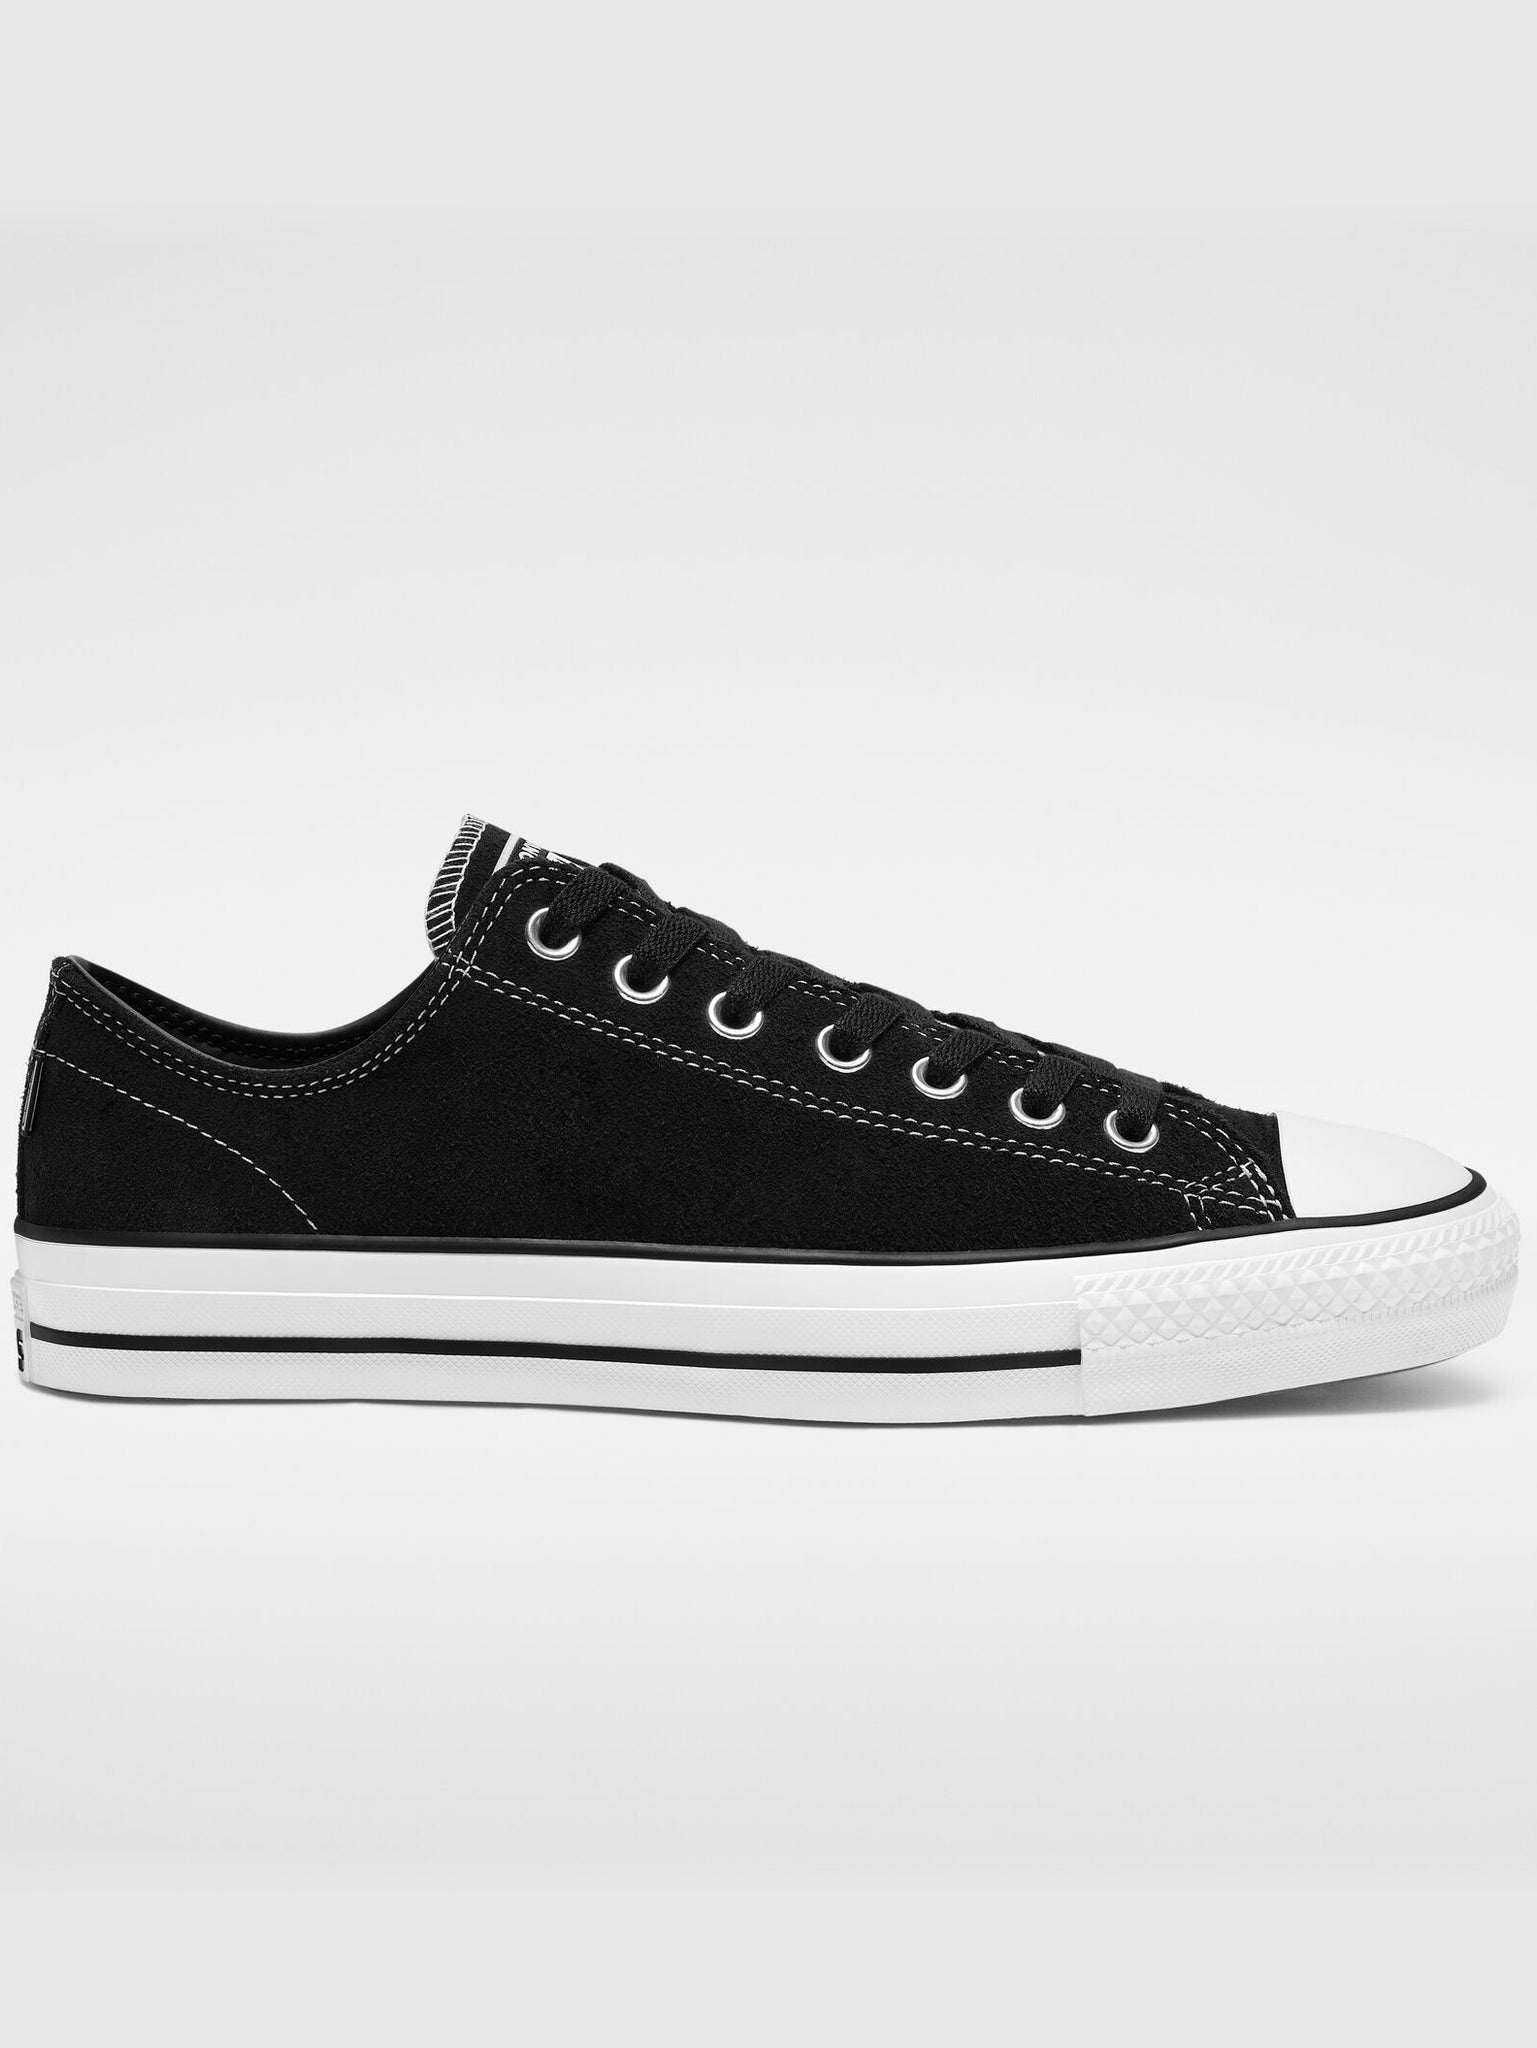 CTAS Pro Suede Low Top Shoes